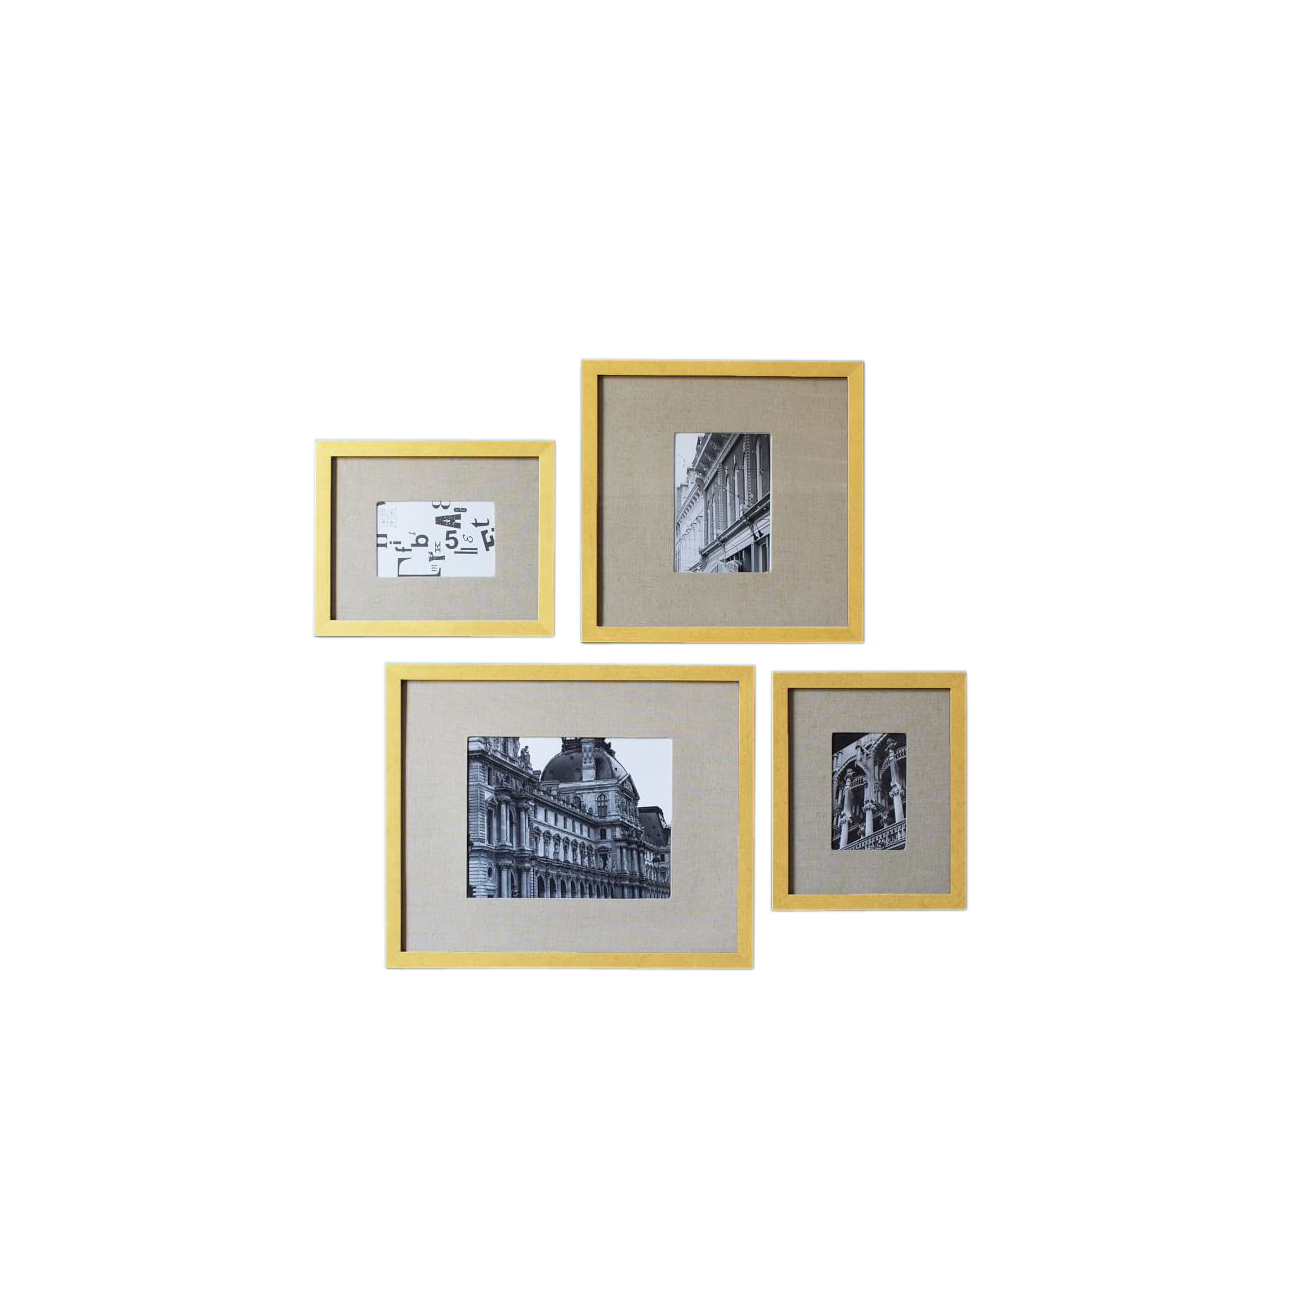 Gallery Frames - Gold Leaf